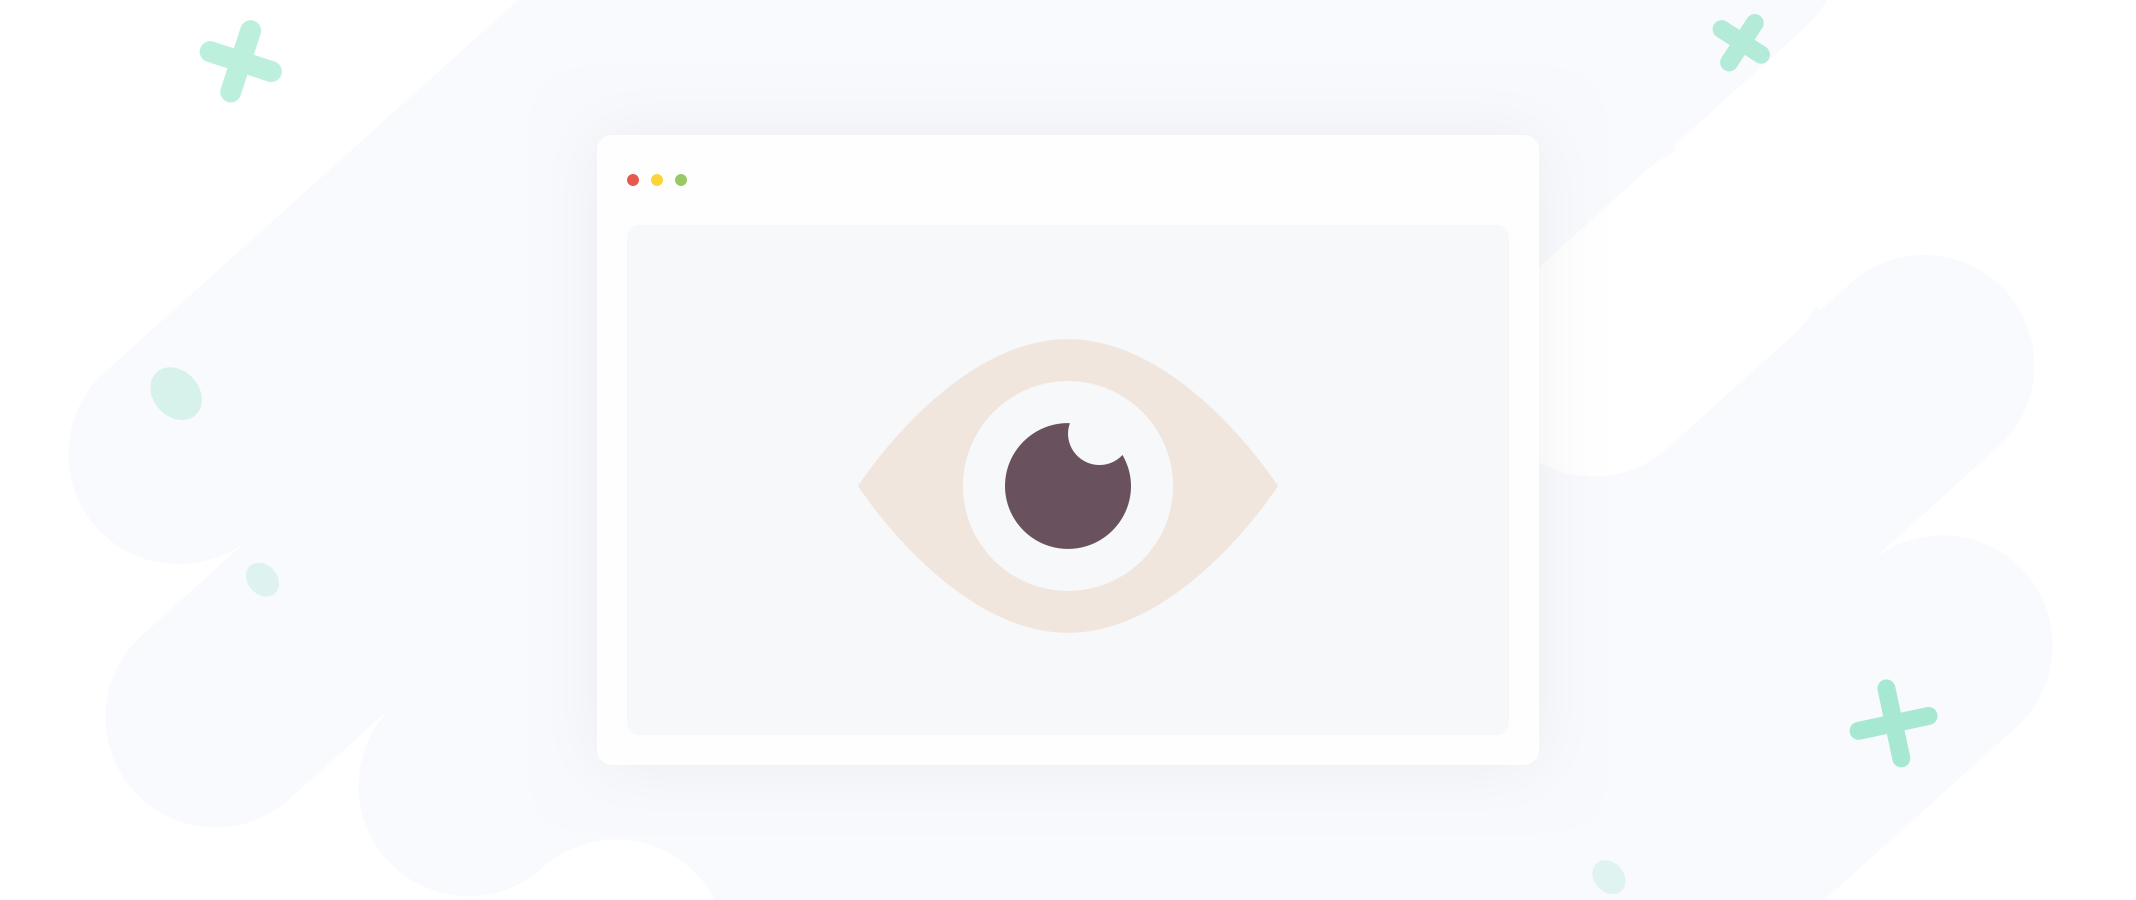 se-ranking-seo-audit